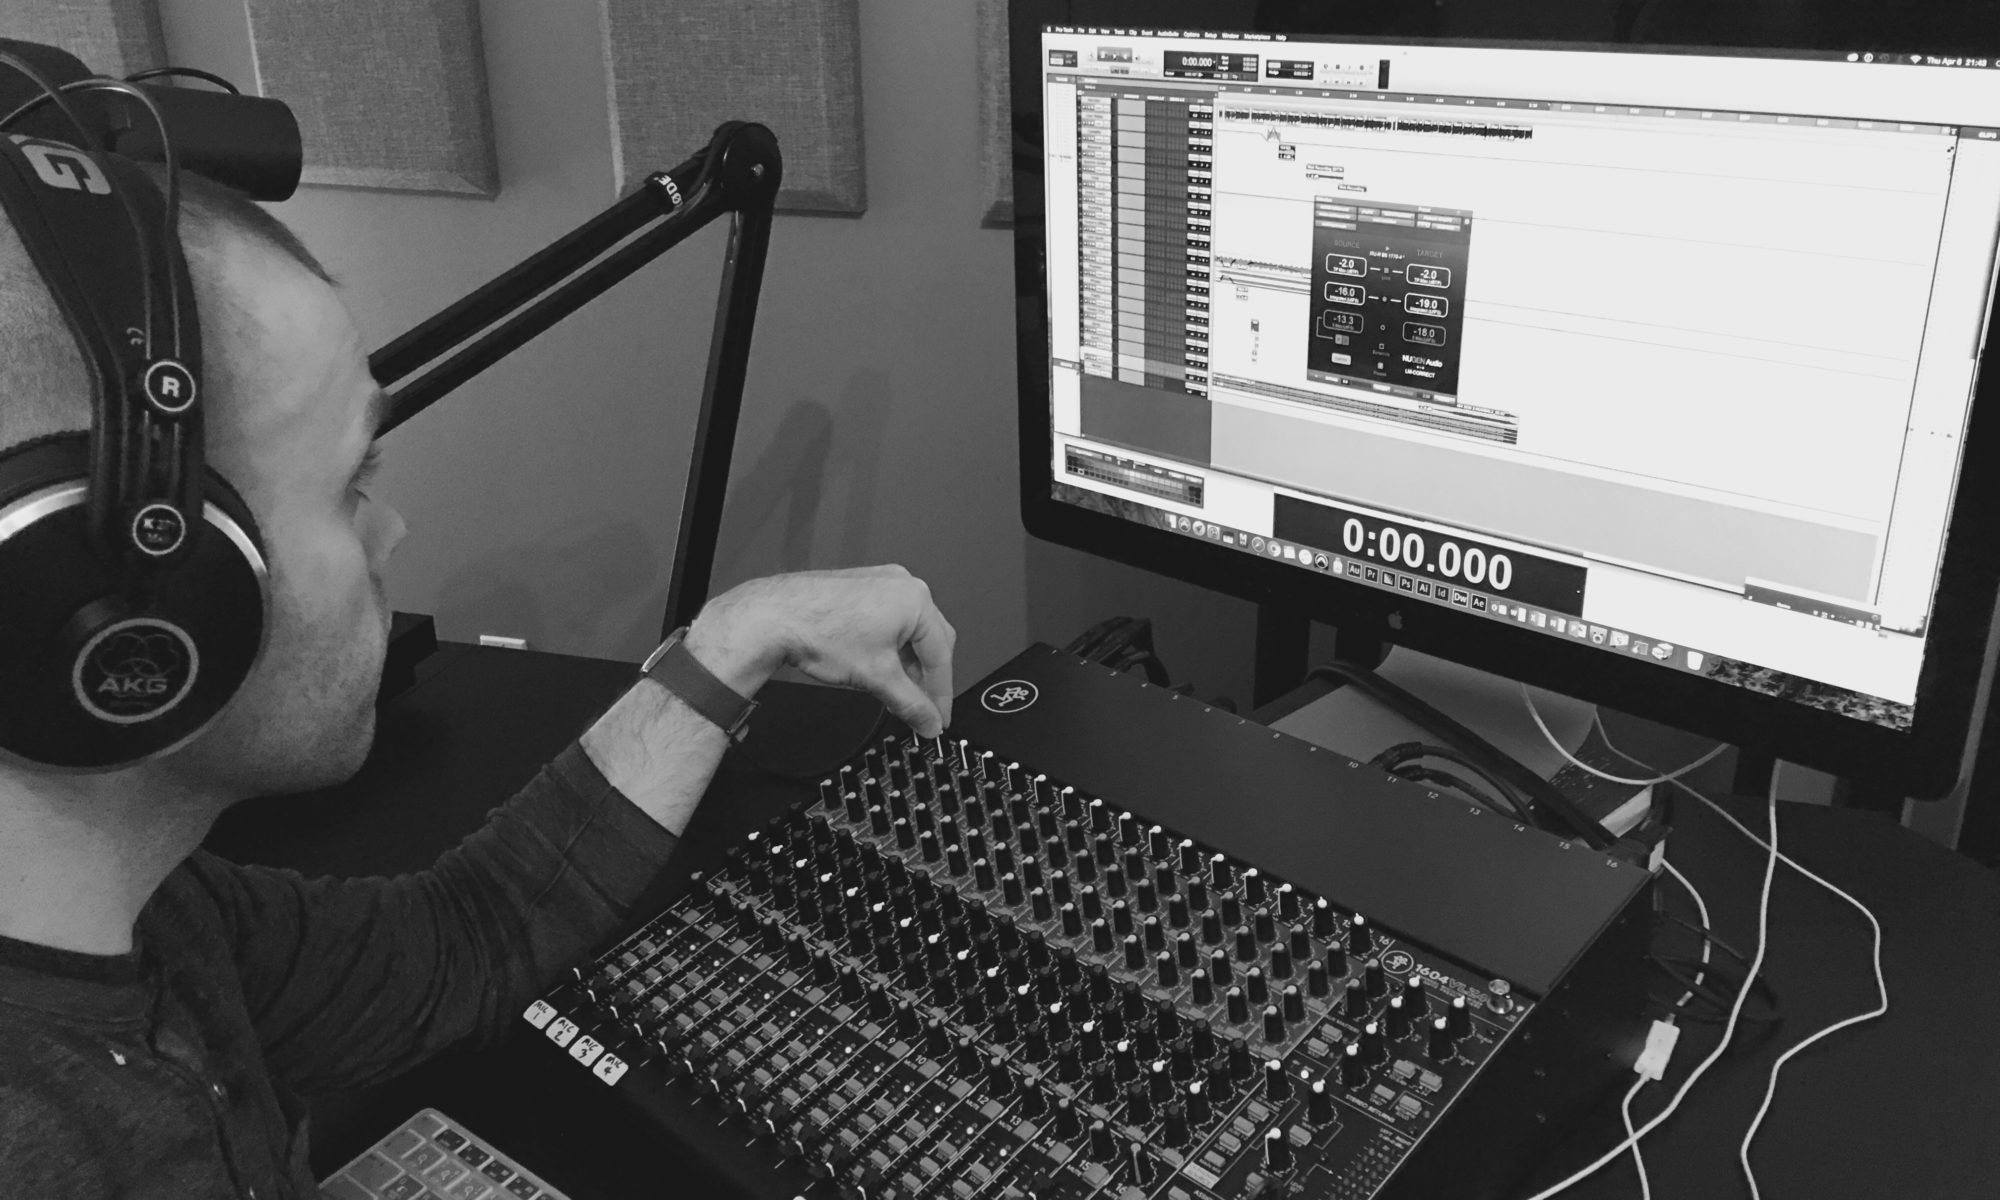 Alex Knight at the mixing console, working on sound designing a podcast in Avid Pro Tools.